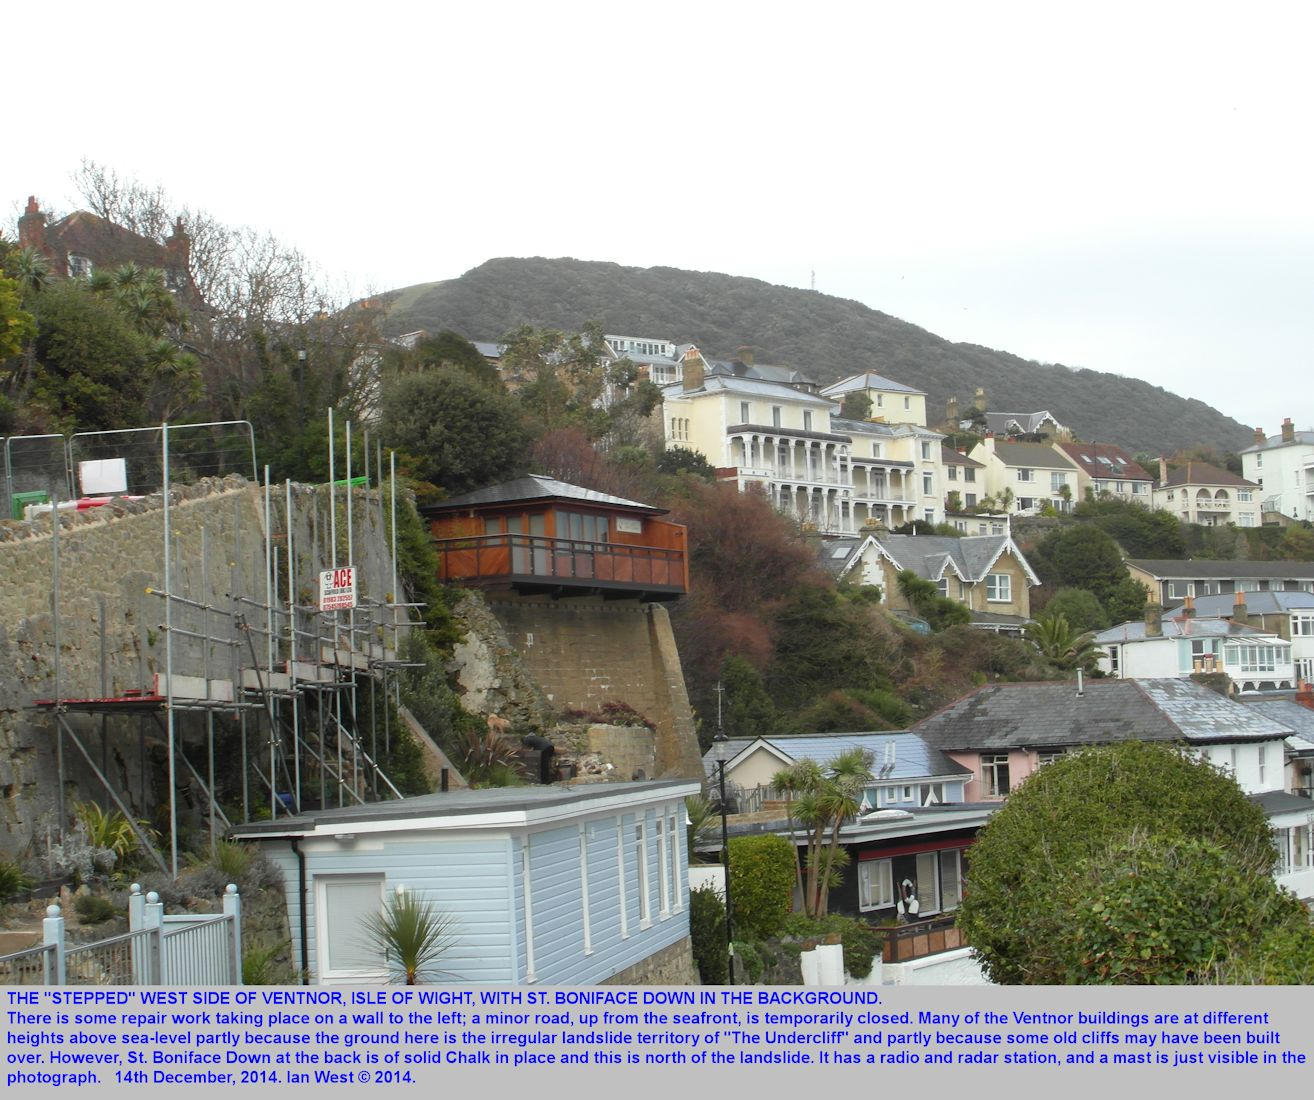 Ventnor, Isle of Wight, buildings on the west side above the beach, and wall repairs, and with view of St. Boniface Down, 14th December 2014